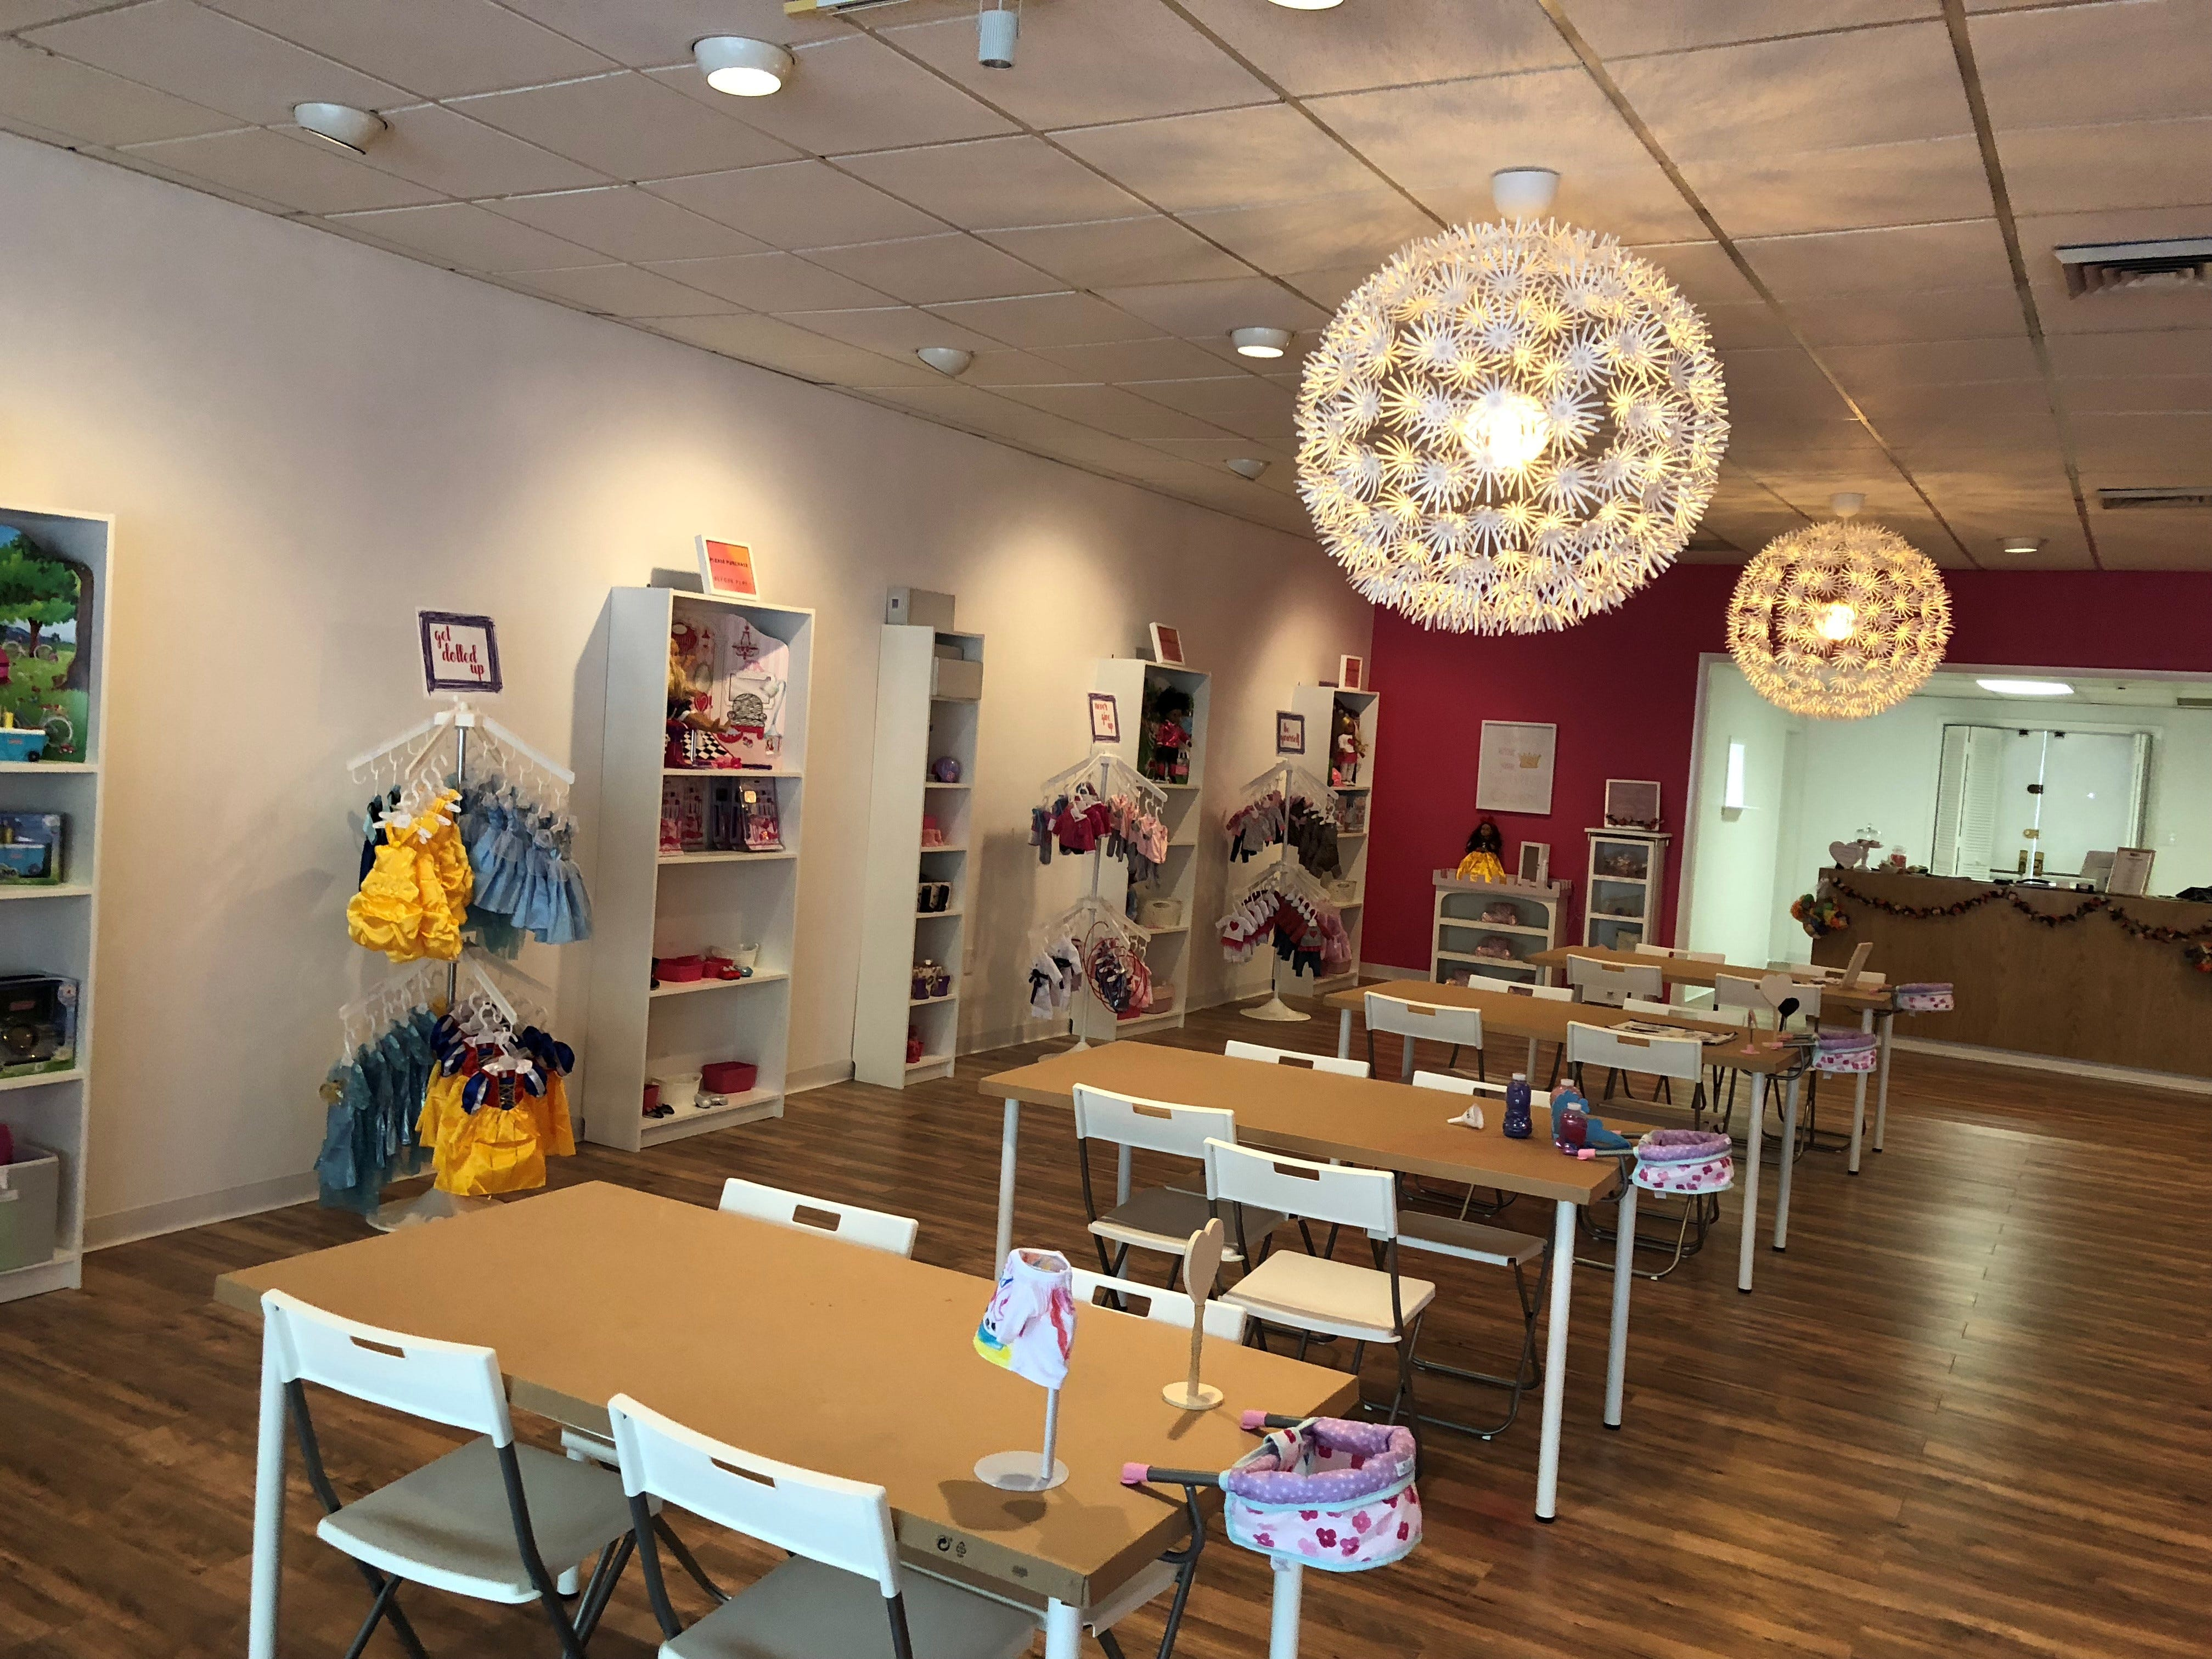 Stella & Toni features a large shopping and activity area, as well as a party room in the back of the store.